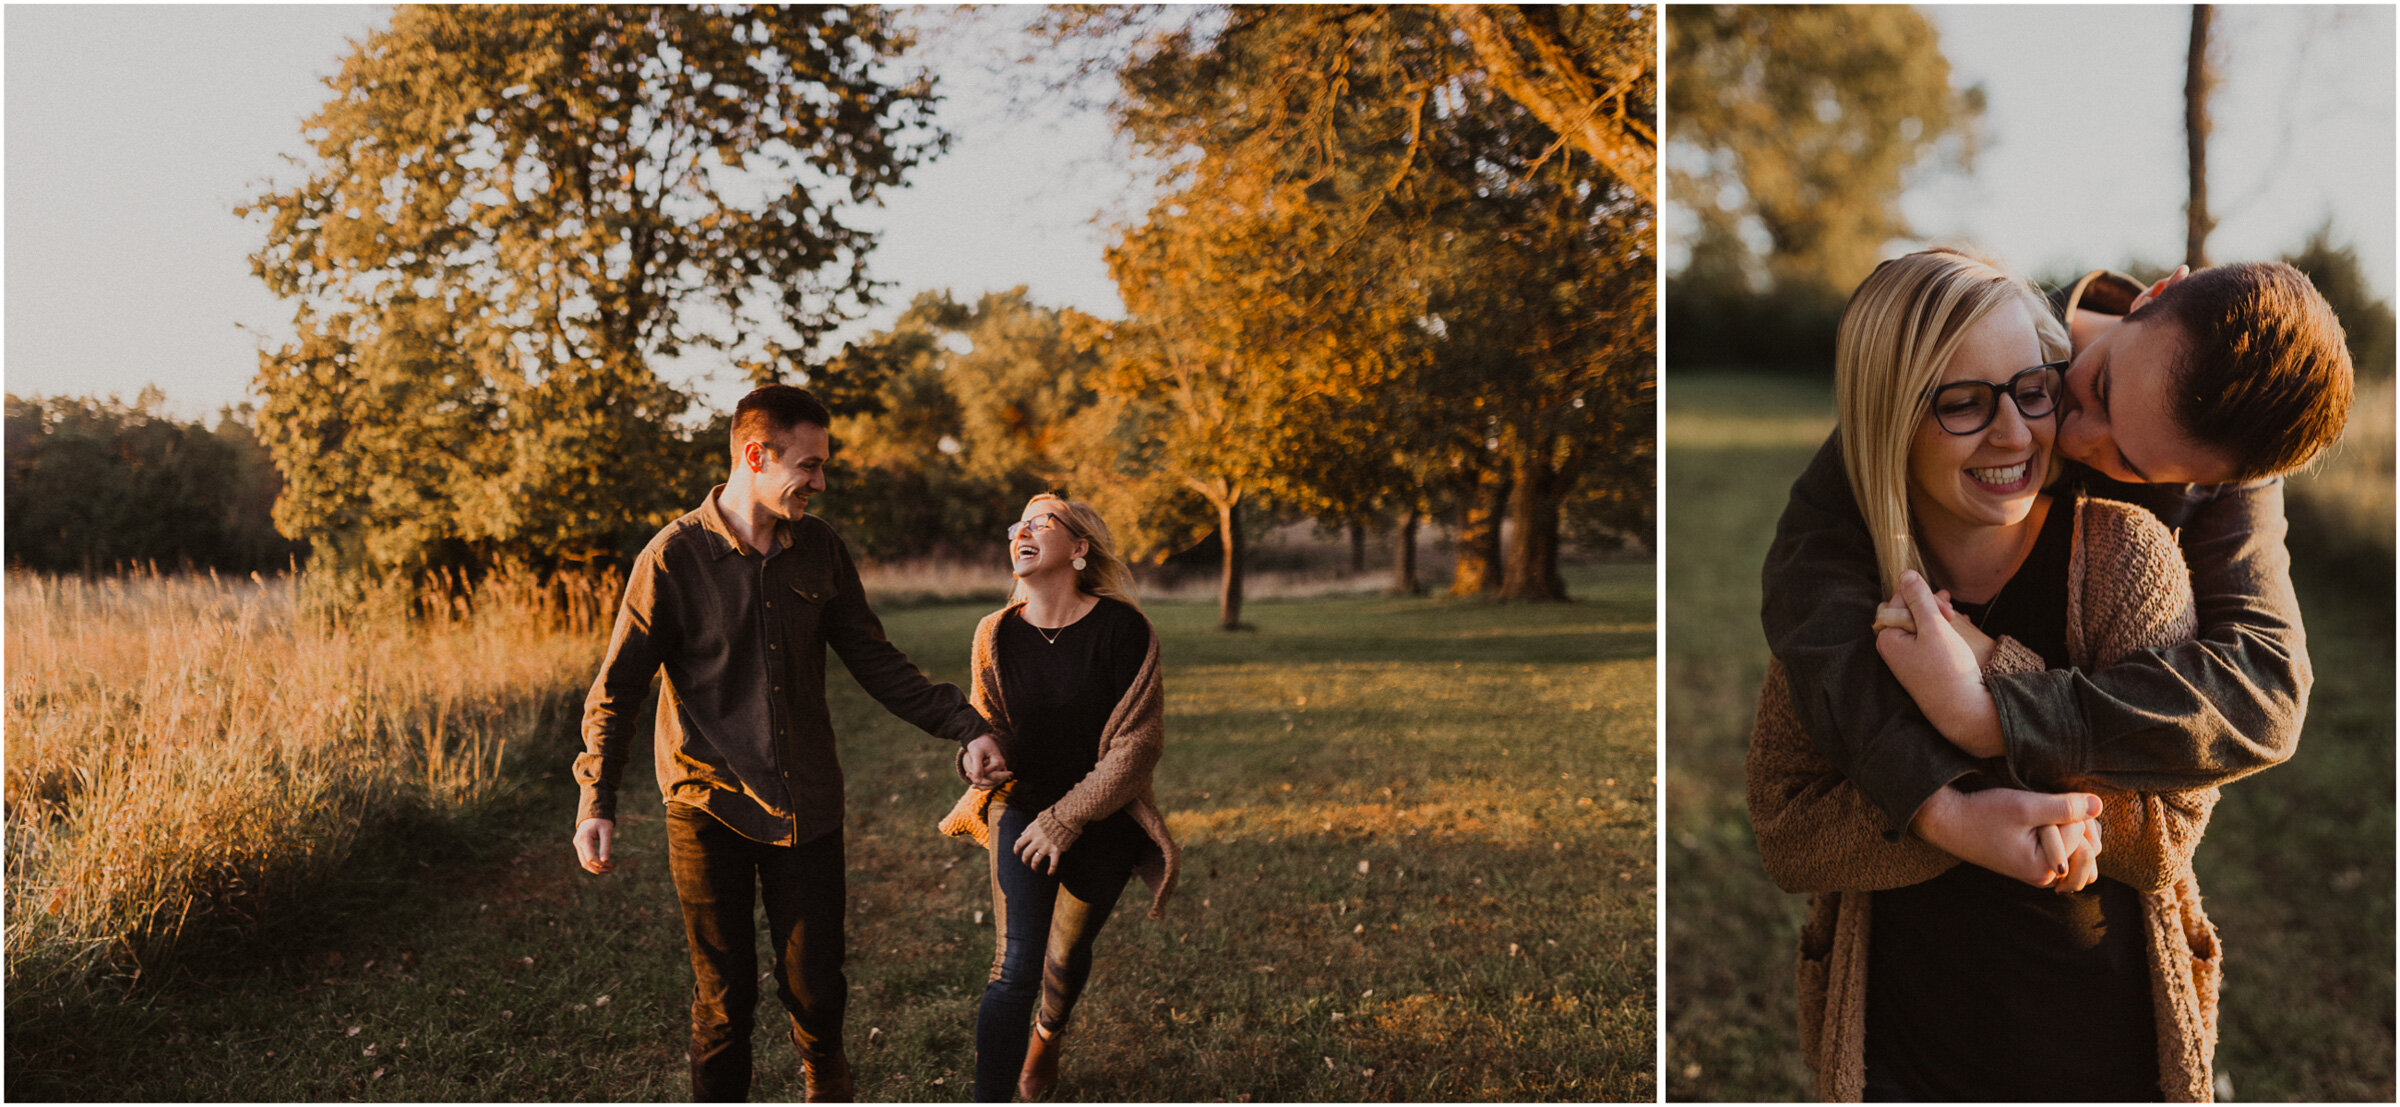 alyssa barletter photography shawnee mission park engagement session photographer fall sunset-8.jpg